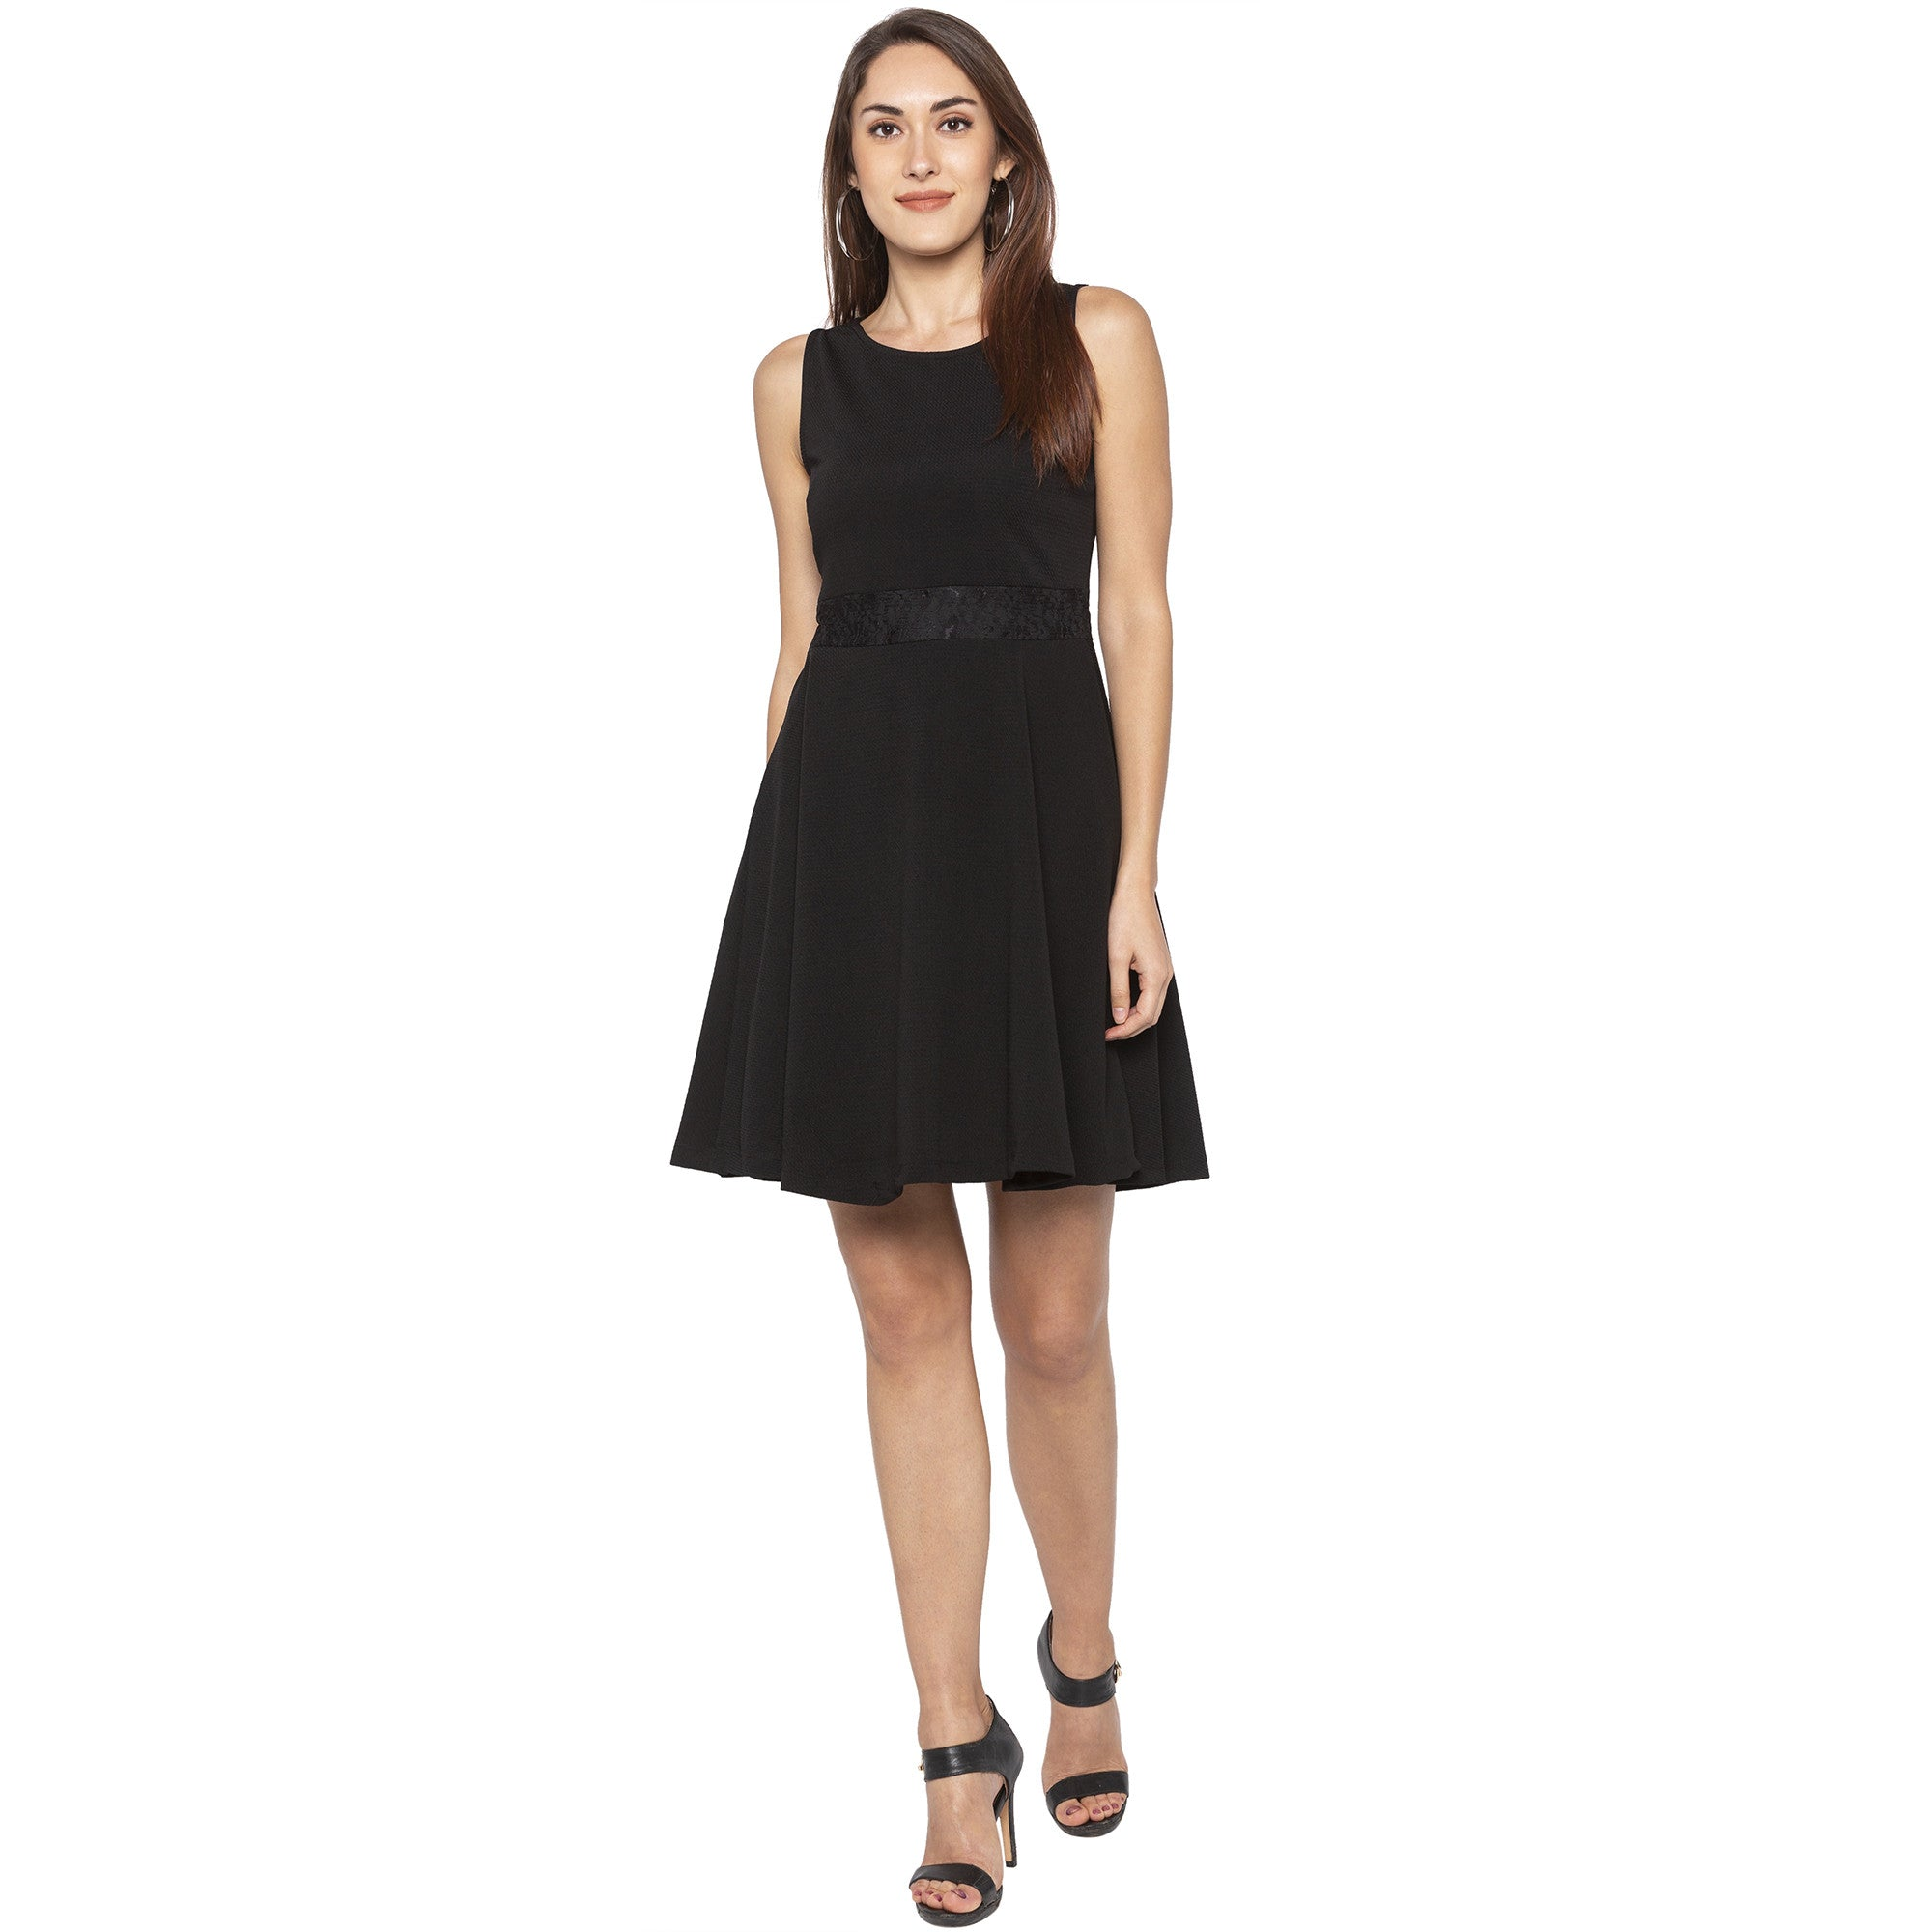 Casual Black Color Solid Fit and Flare Dress-4